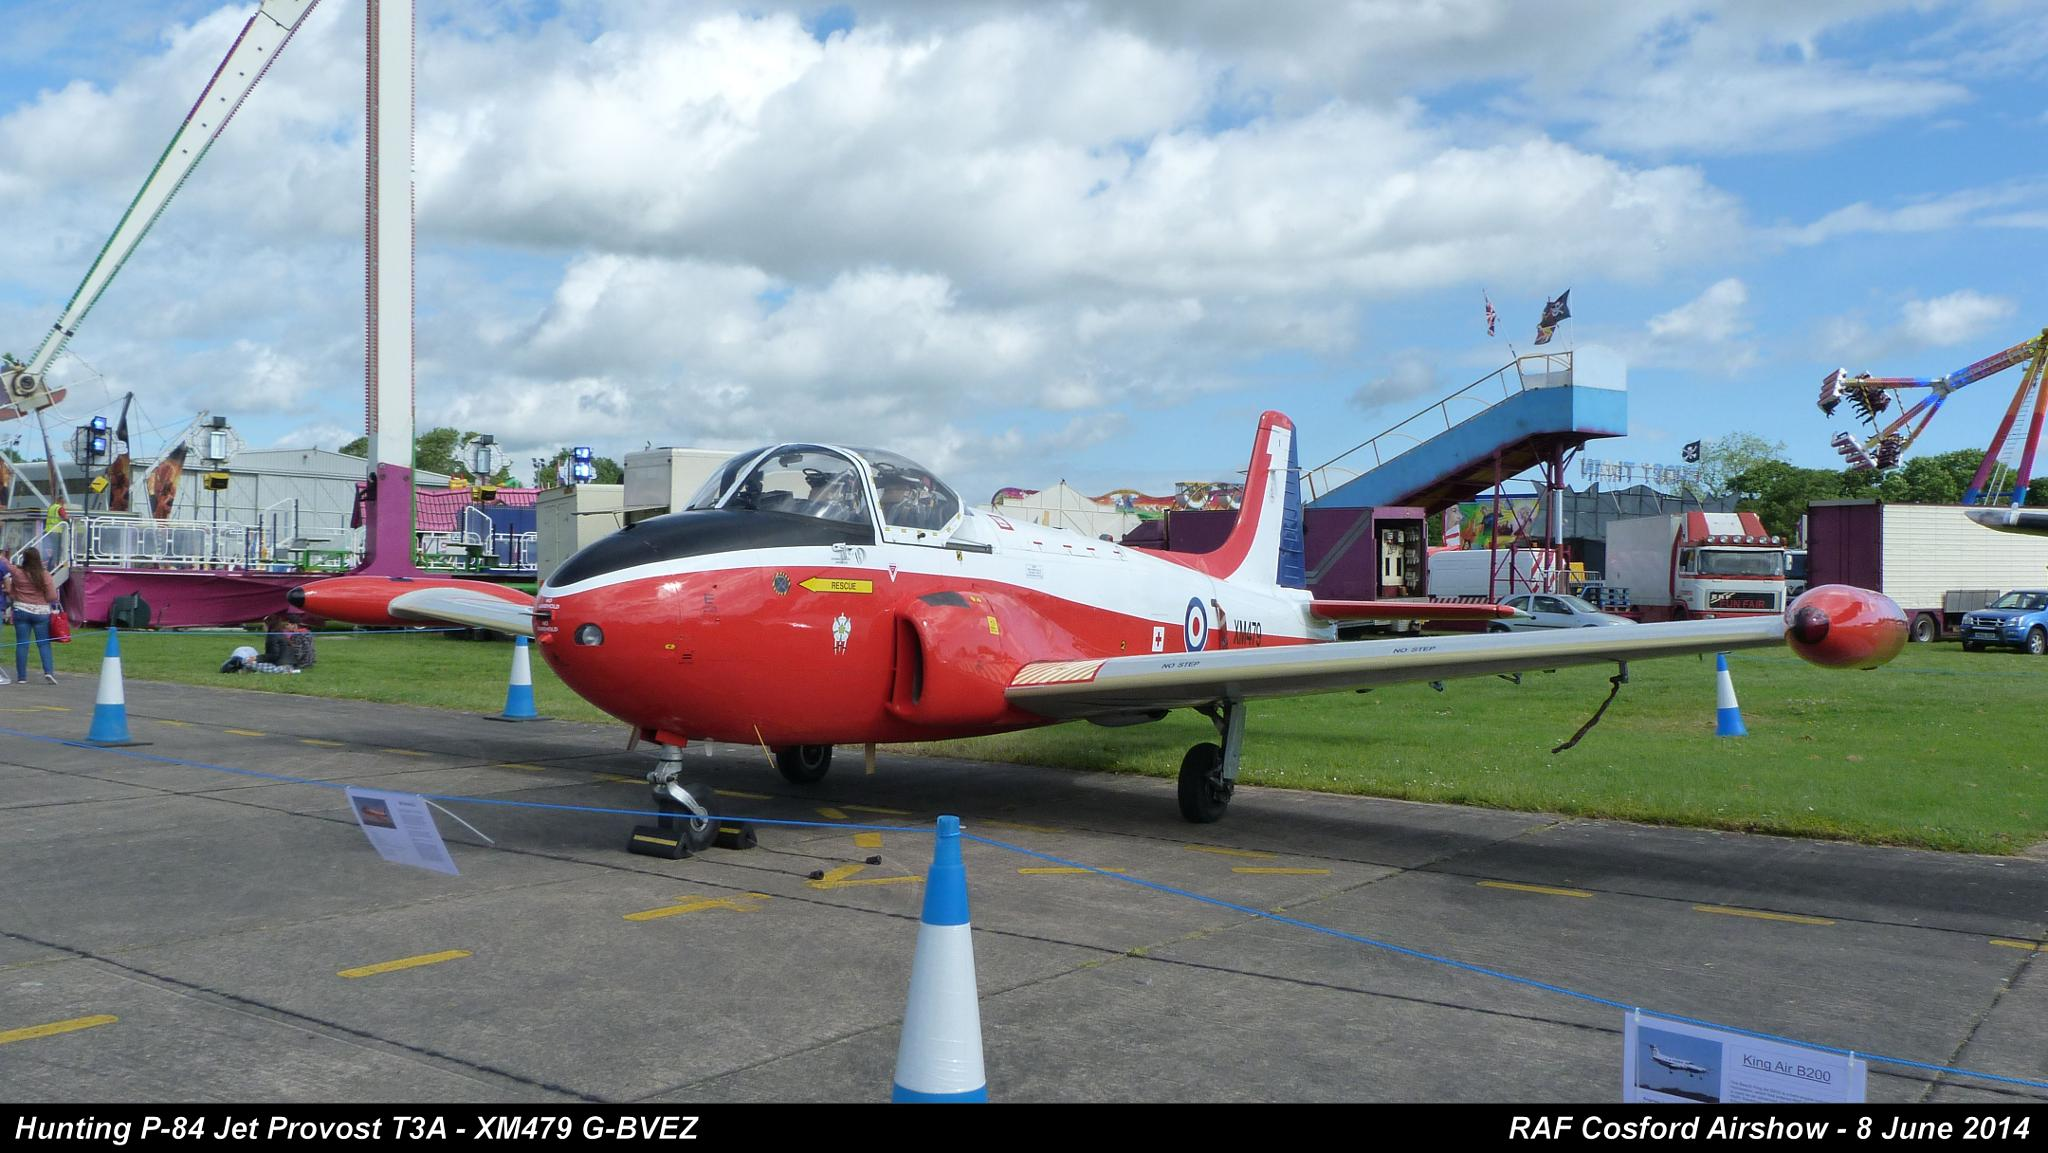 Hunting P-84 Jet Provost T3A - XM479 G-BVEZ by Graham Wood Photo Collection